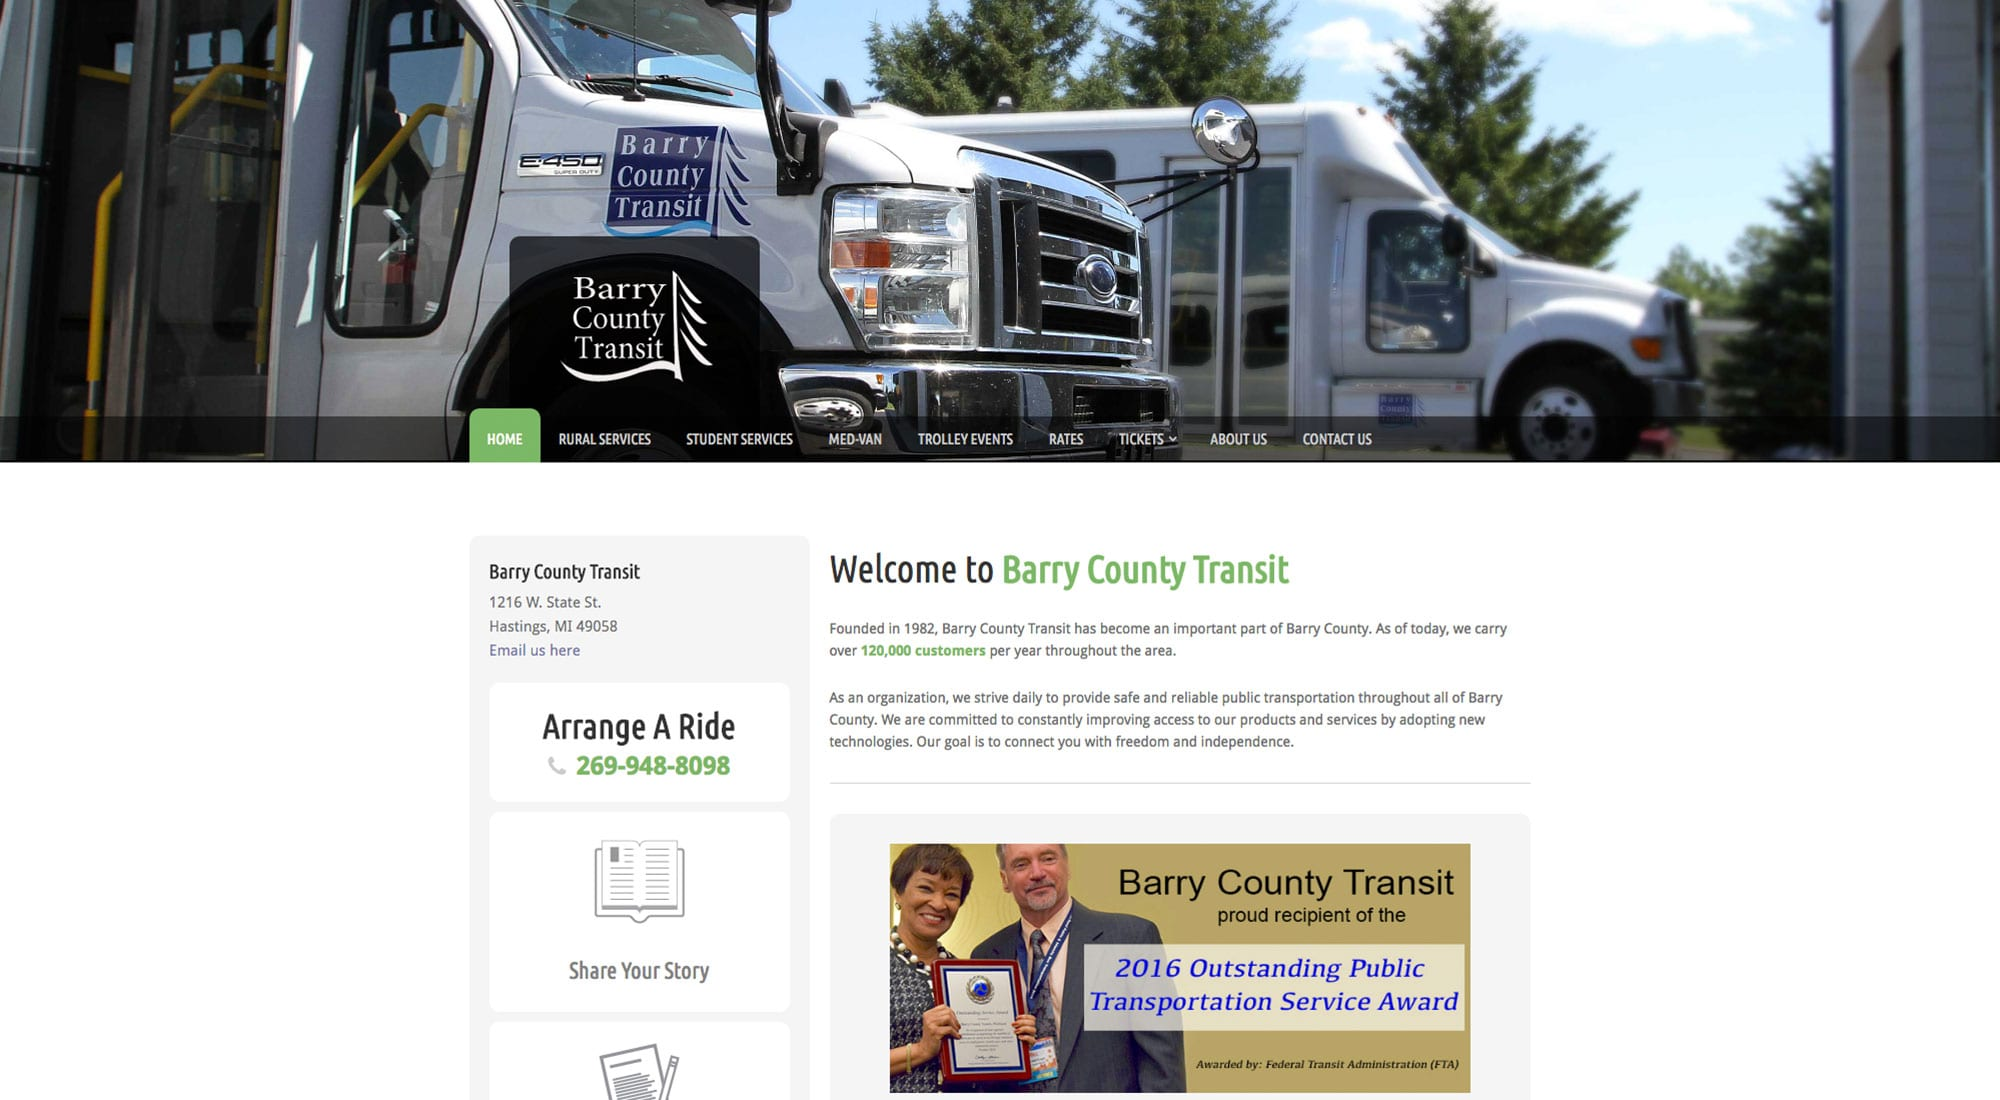 Barry County Transit in Hastings MI website designer Pixelvine Creative